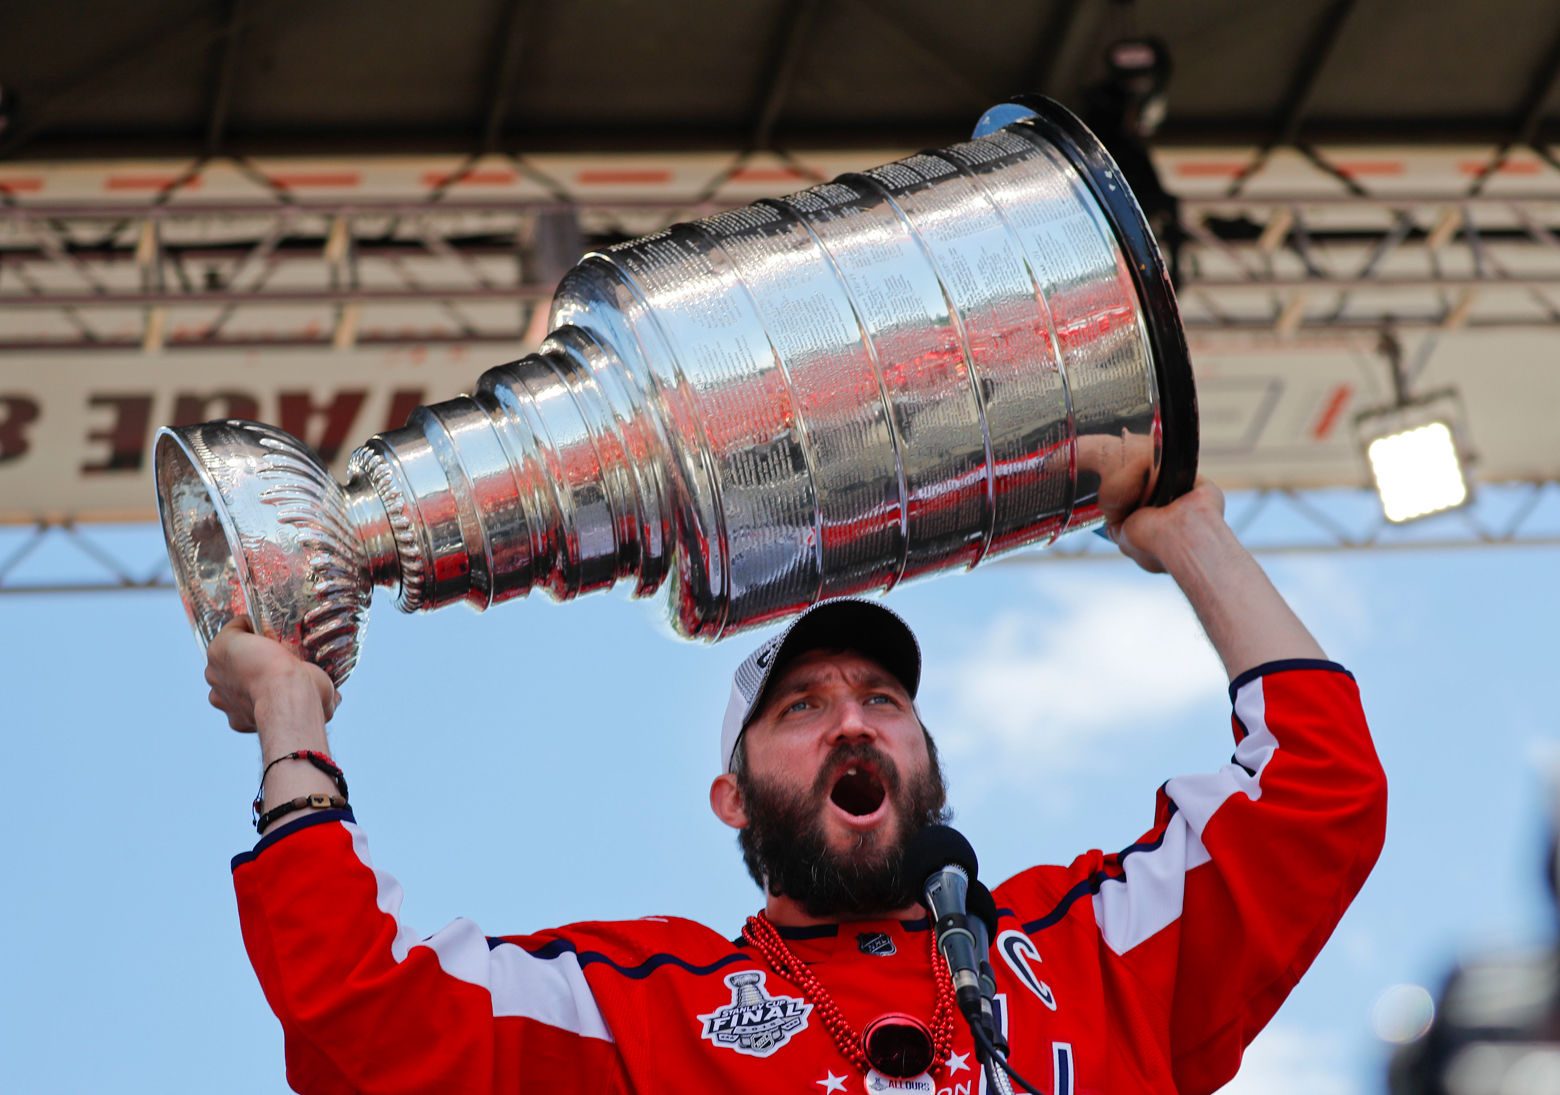 The moment everyone was waiting for: Alex Ovechkin raises the Stanley Cup on the rally stage in front of the U.S. Capitol Building on Tuesday. (AP Photo/Pablo Martinez Monsivais)